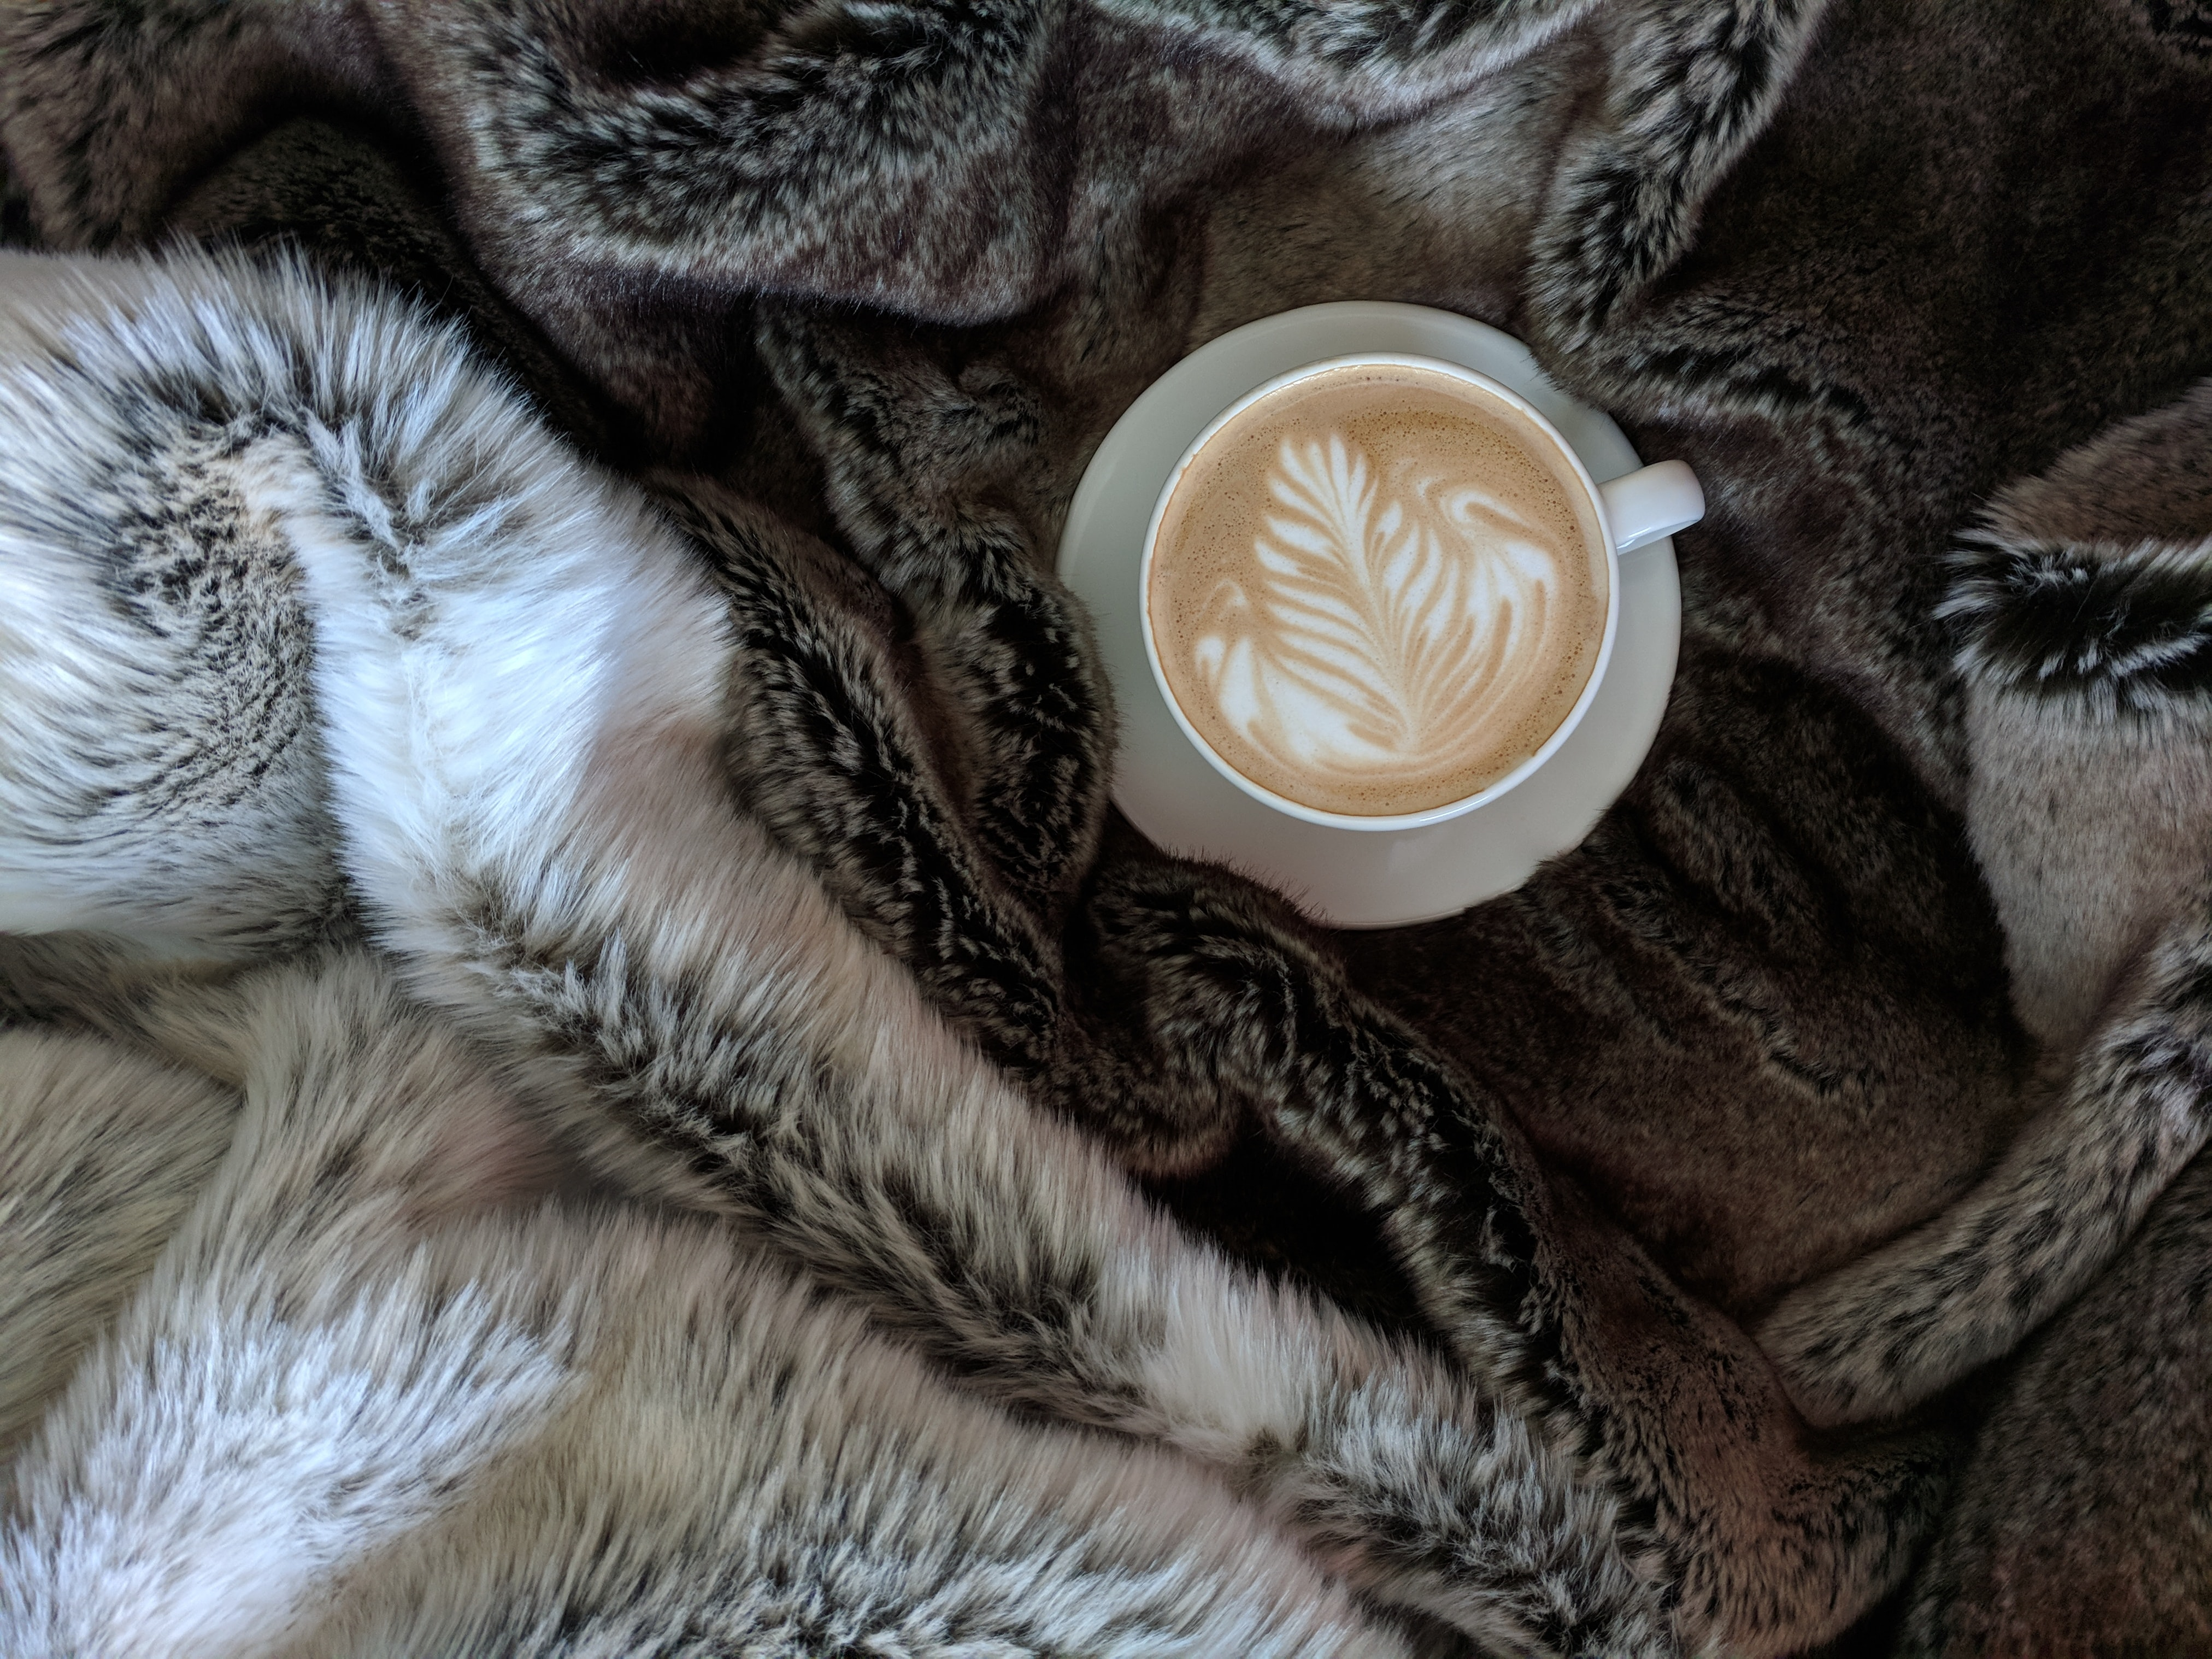 teacup filled with cappuccino